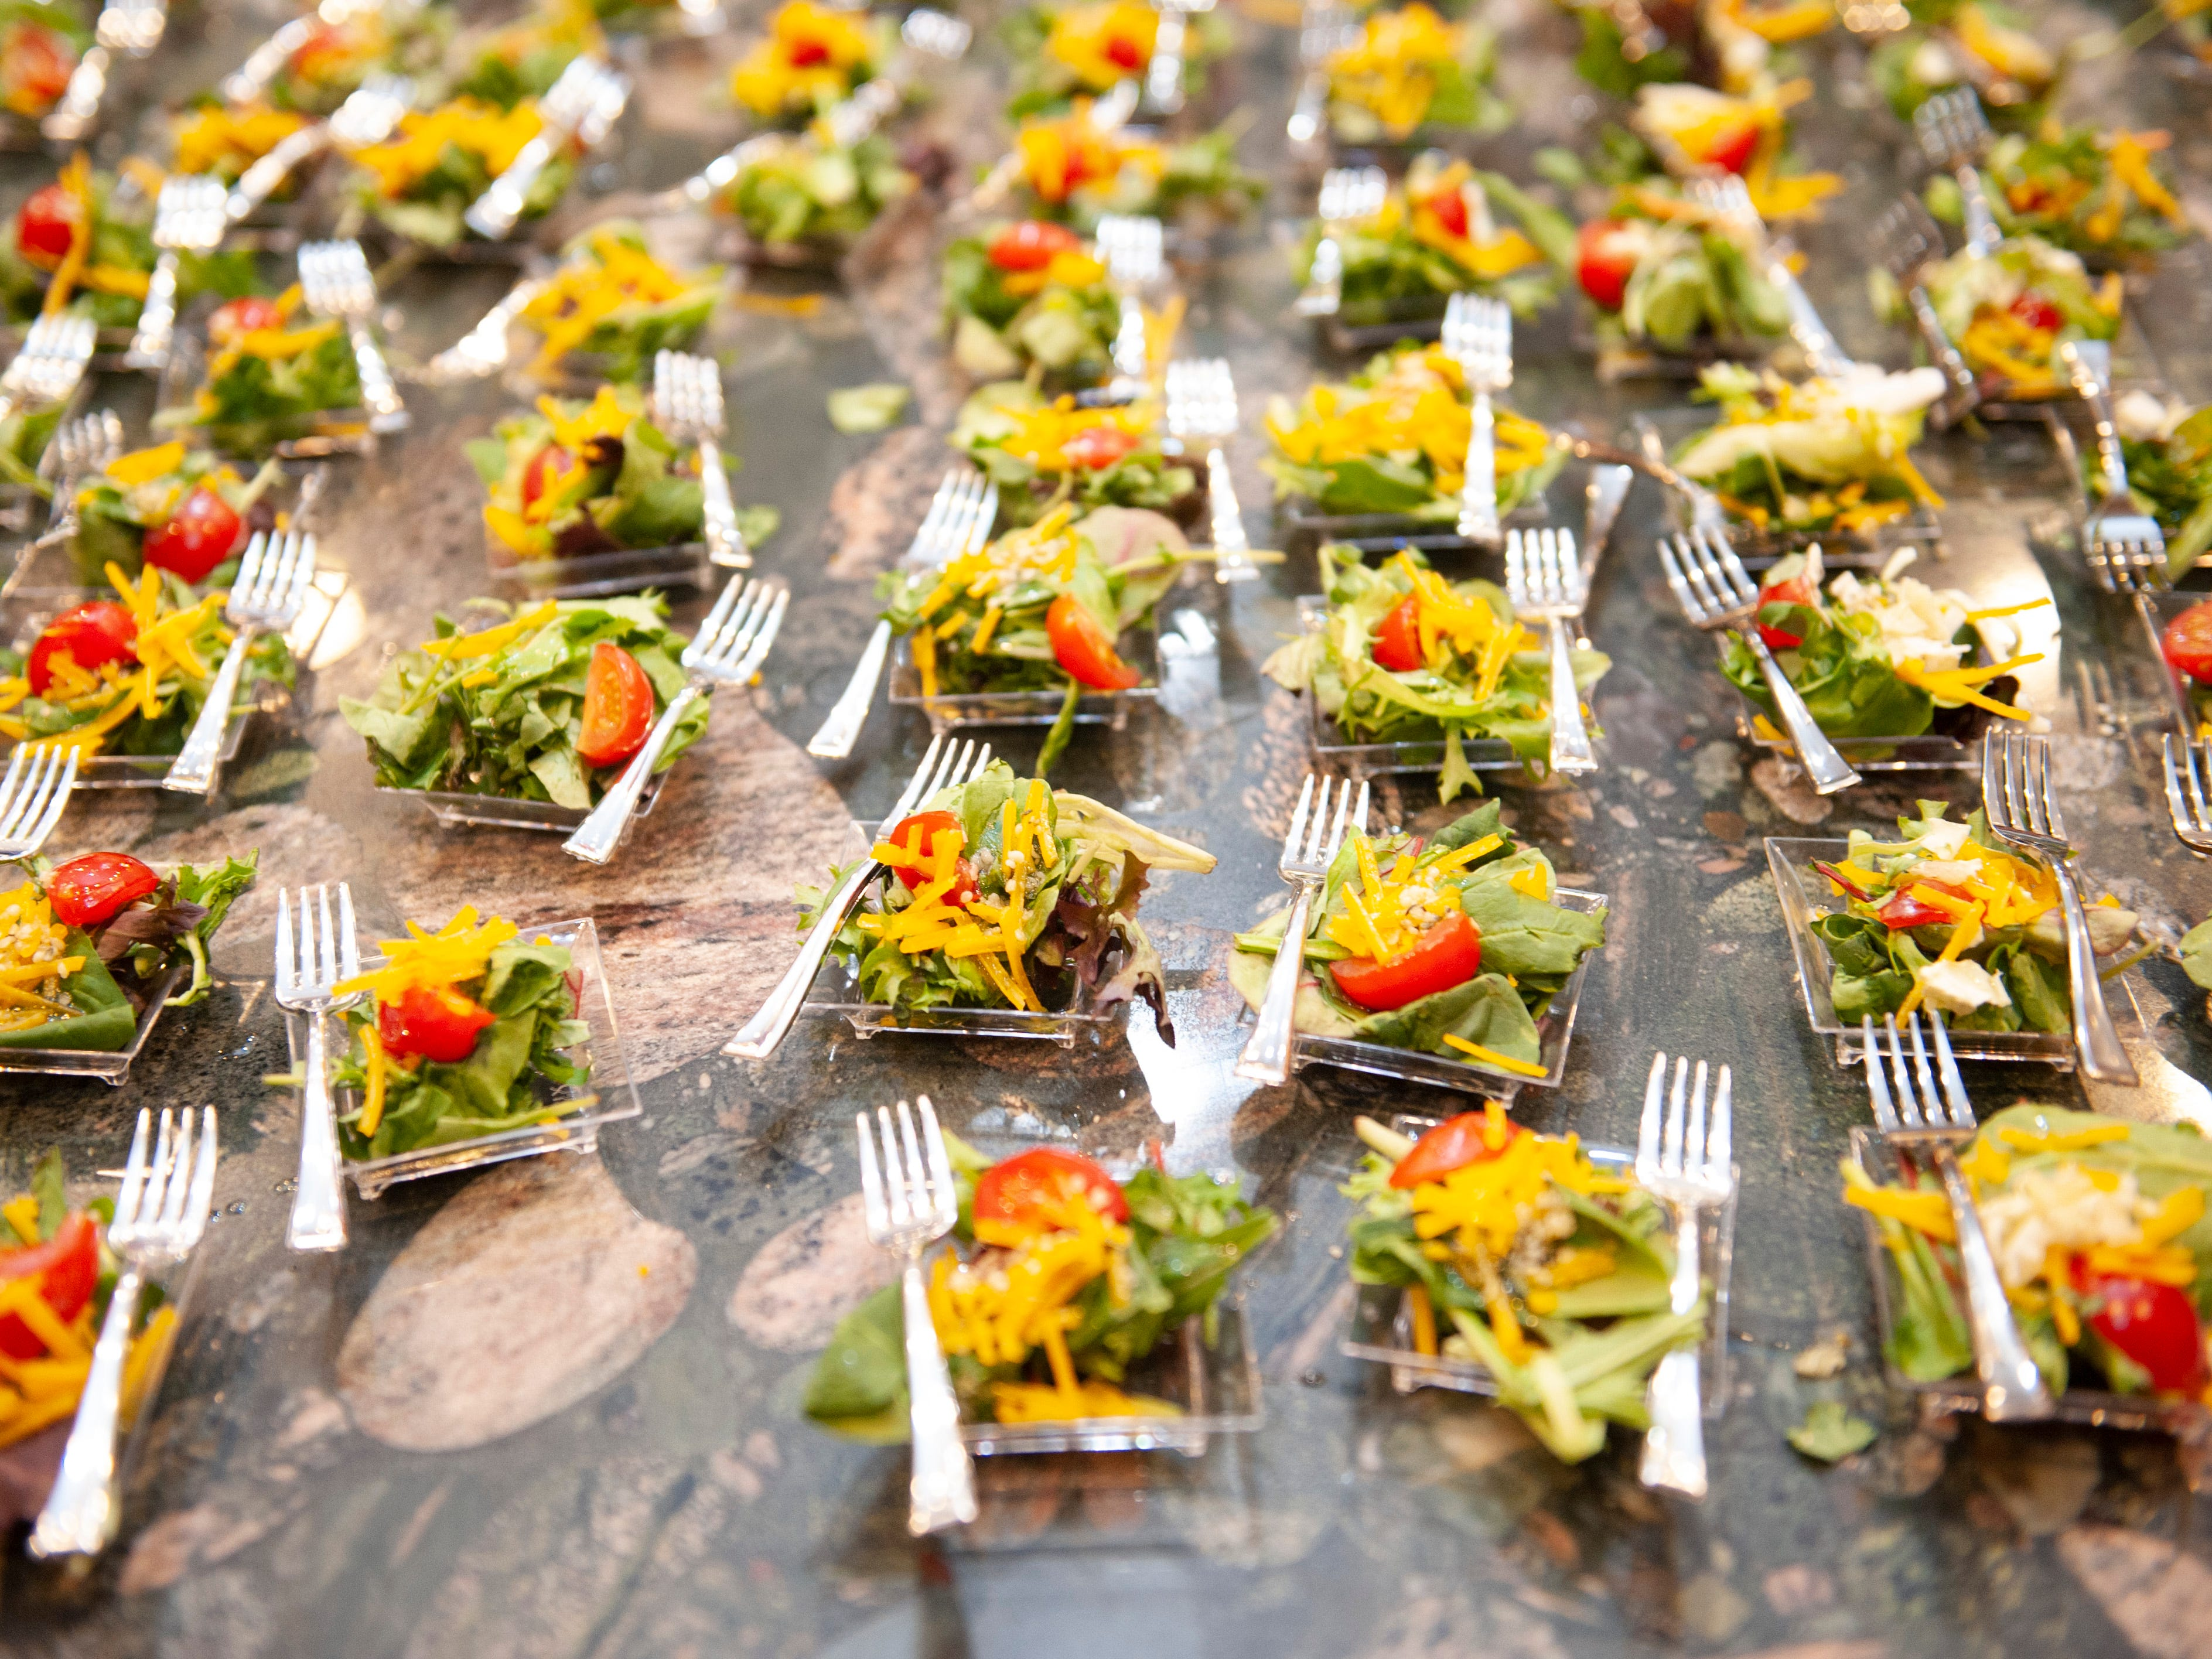 Cannabis-infused salad appetizers by Chef Gigi Diaz are displayed as free samples for guests to enjoy.